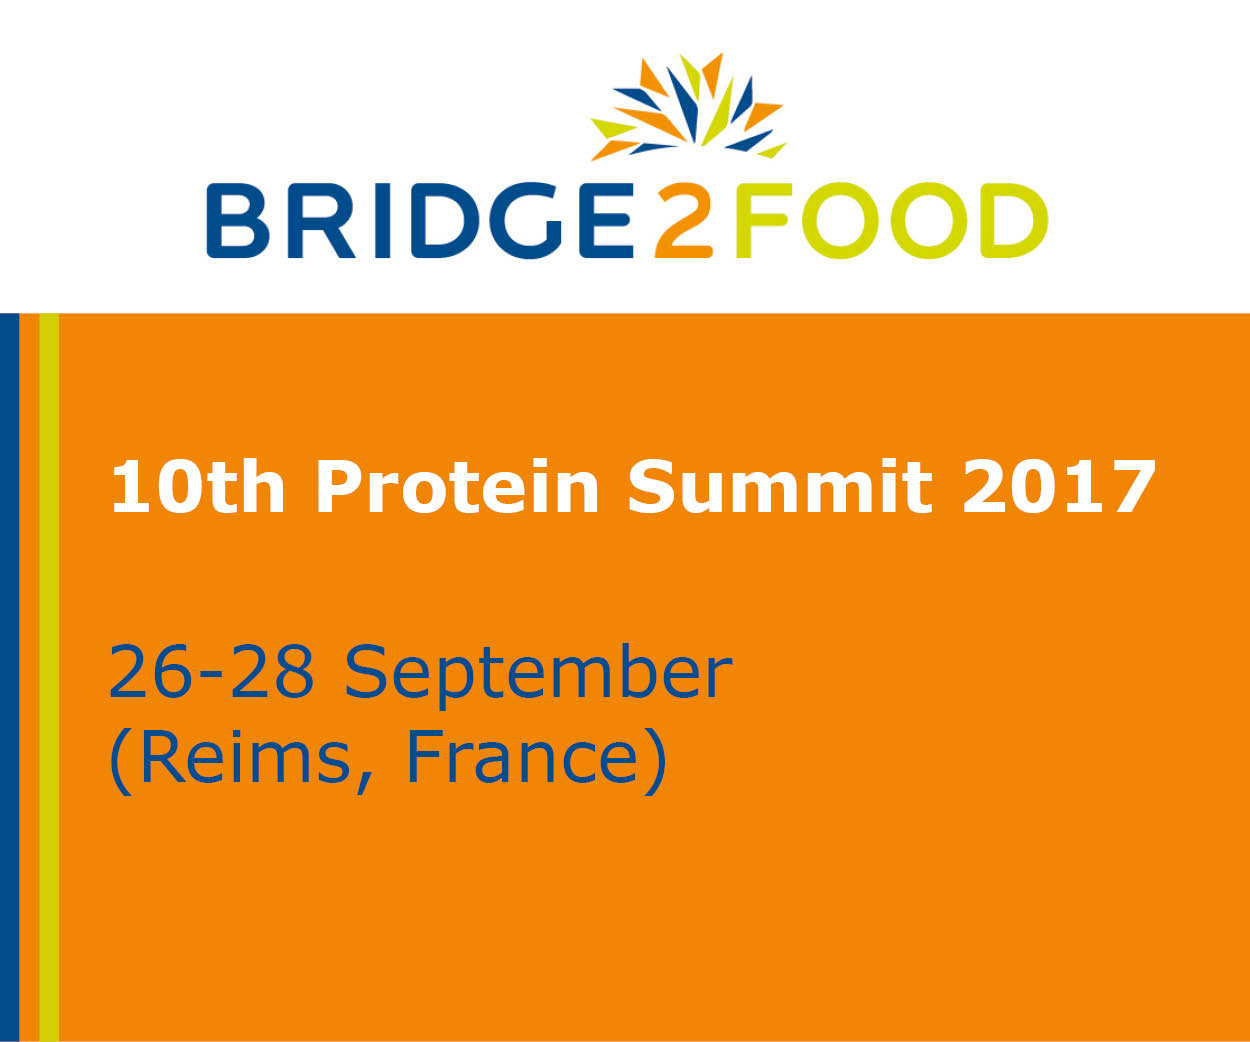 July 2017 – Prof. Kaisa Poutanen Speaking At 10th Protein Summit 2017 (26-28 September In Reims)